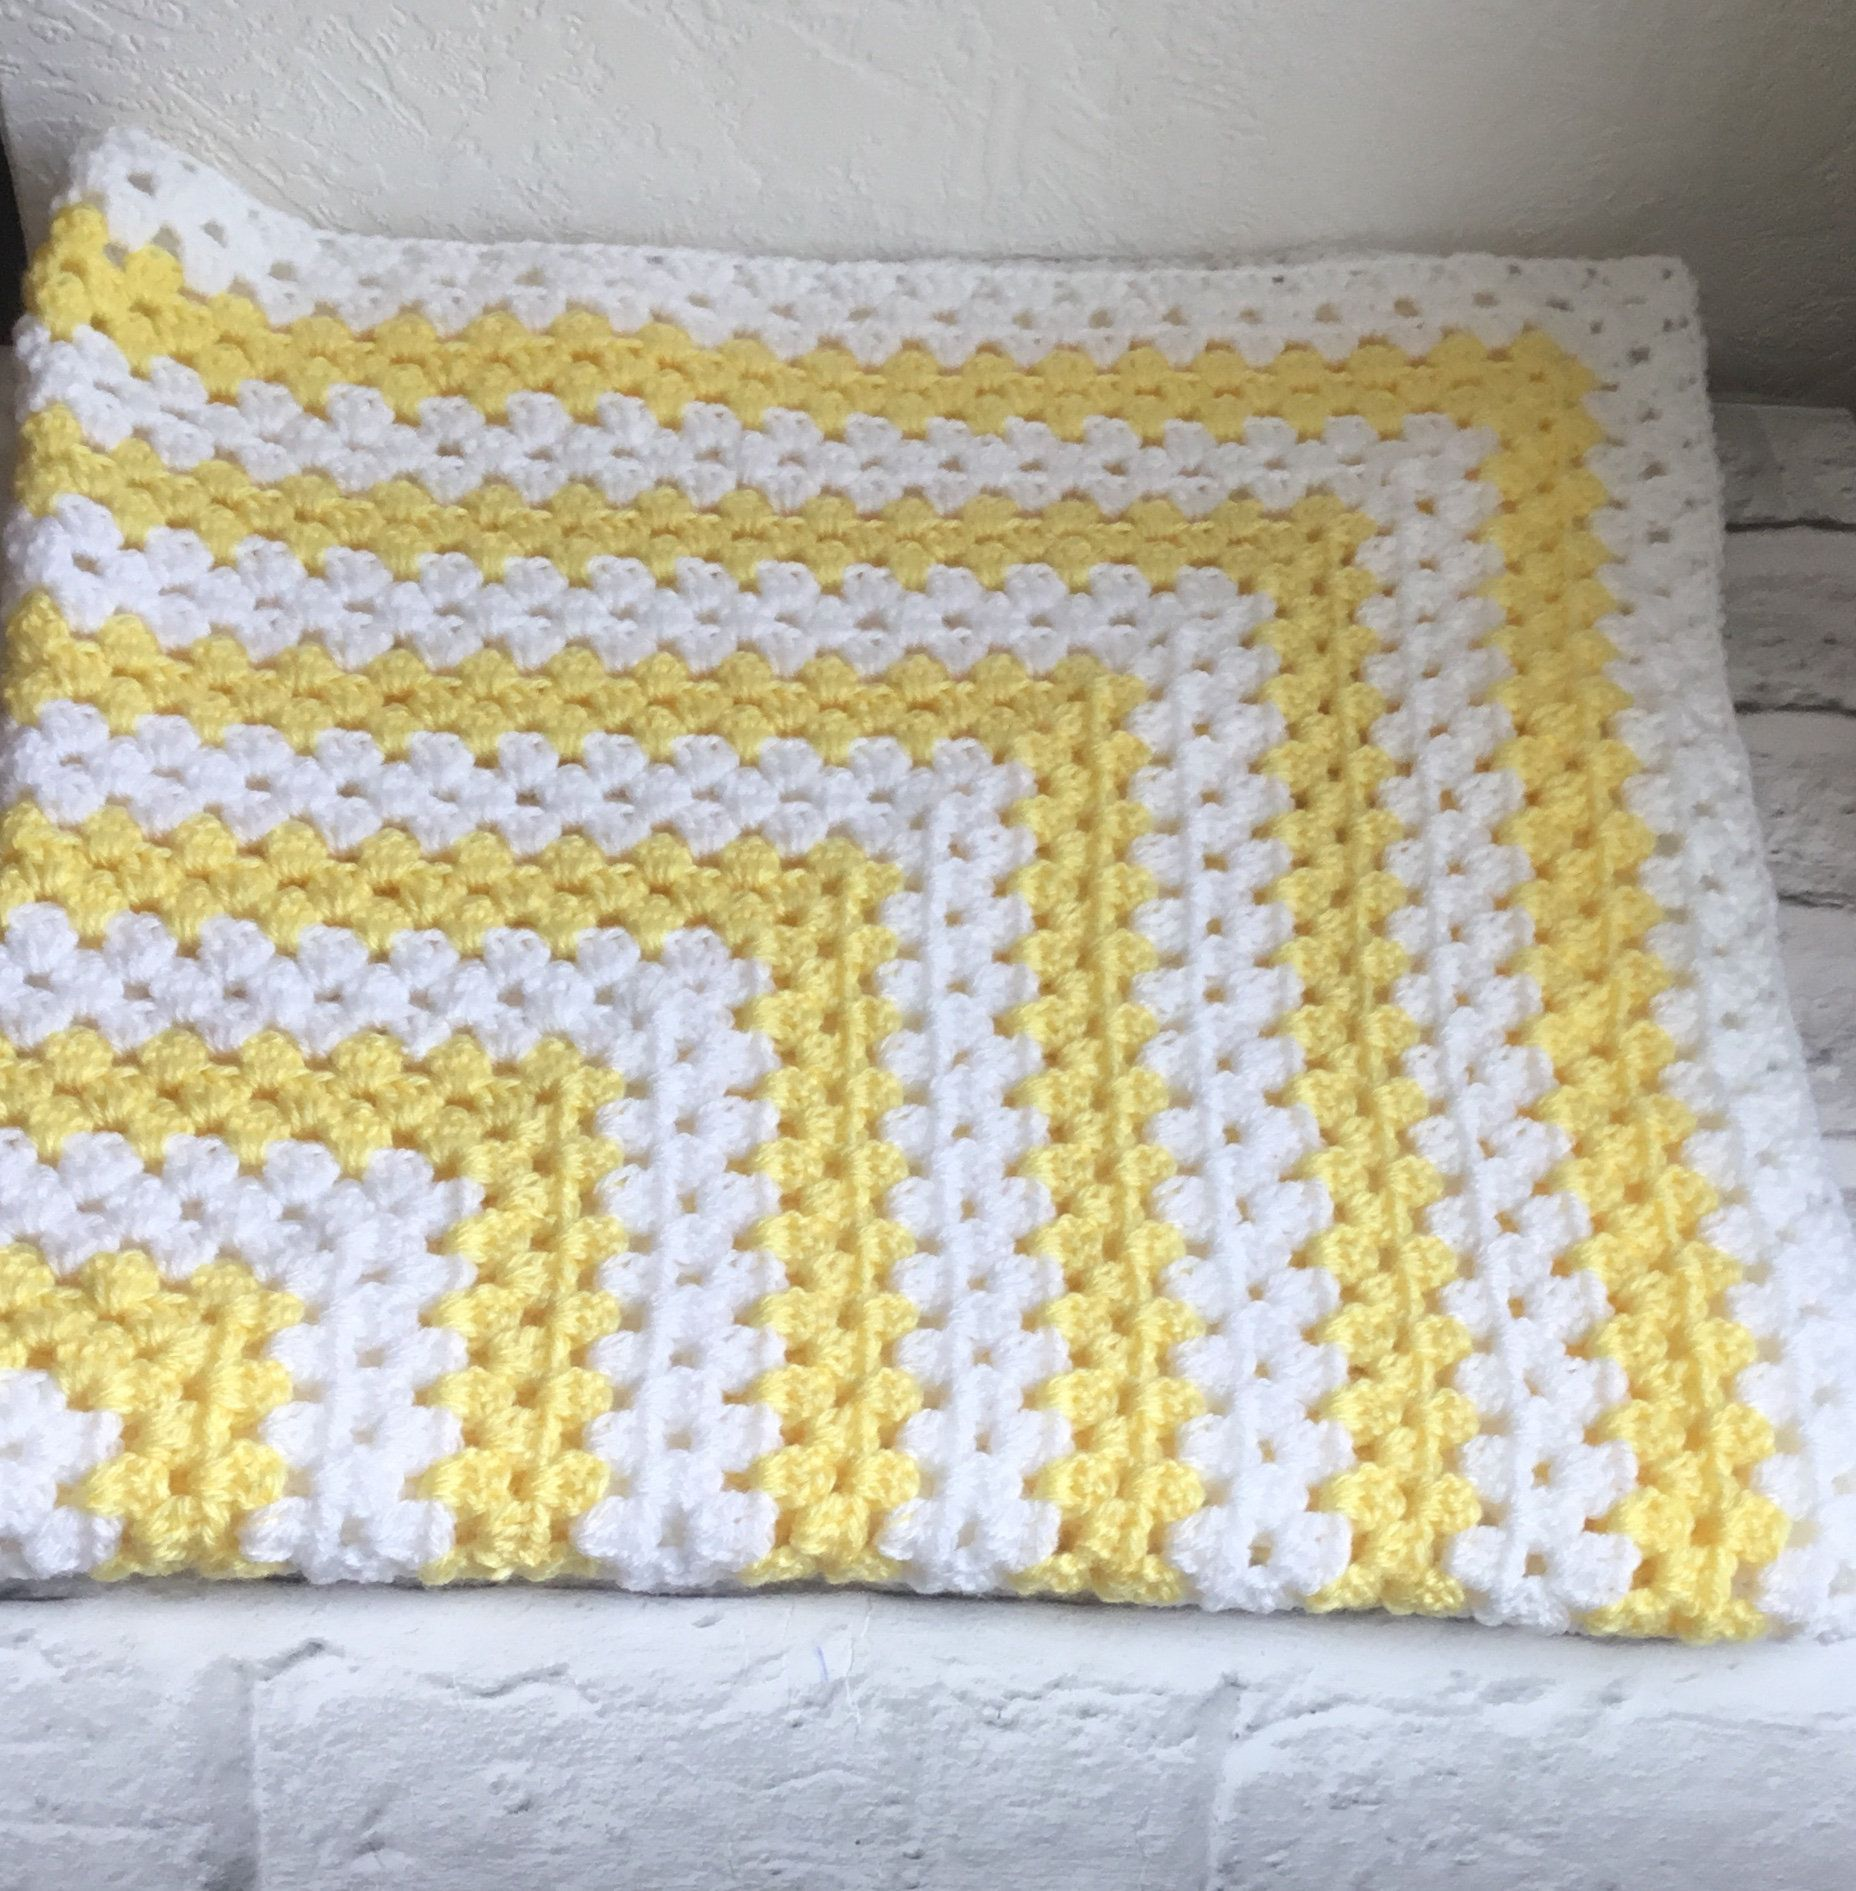 Granny Square Hand Made Crochet Blanket  Baby Blanket  Toddler Blanket  Pram Blanket  Cot Blanket  Baby Gifts  Gifts For Newborns